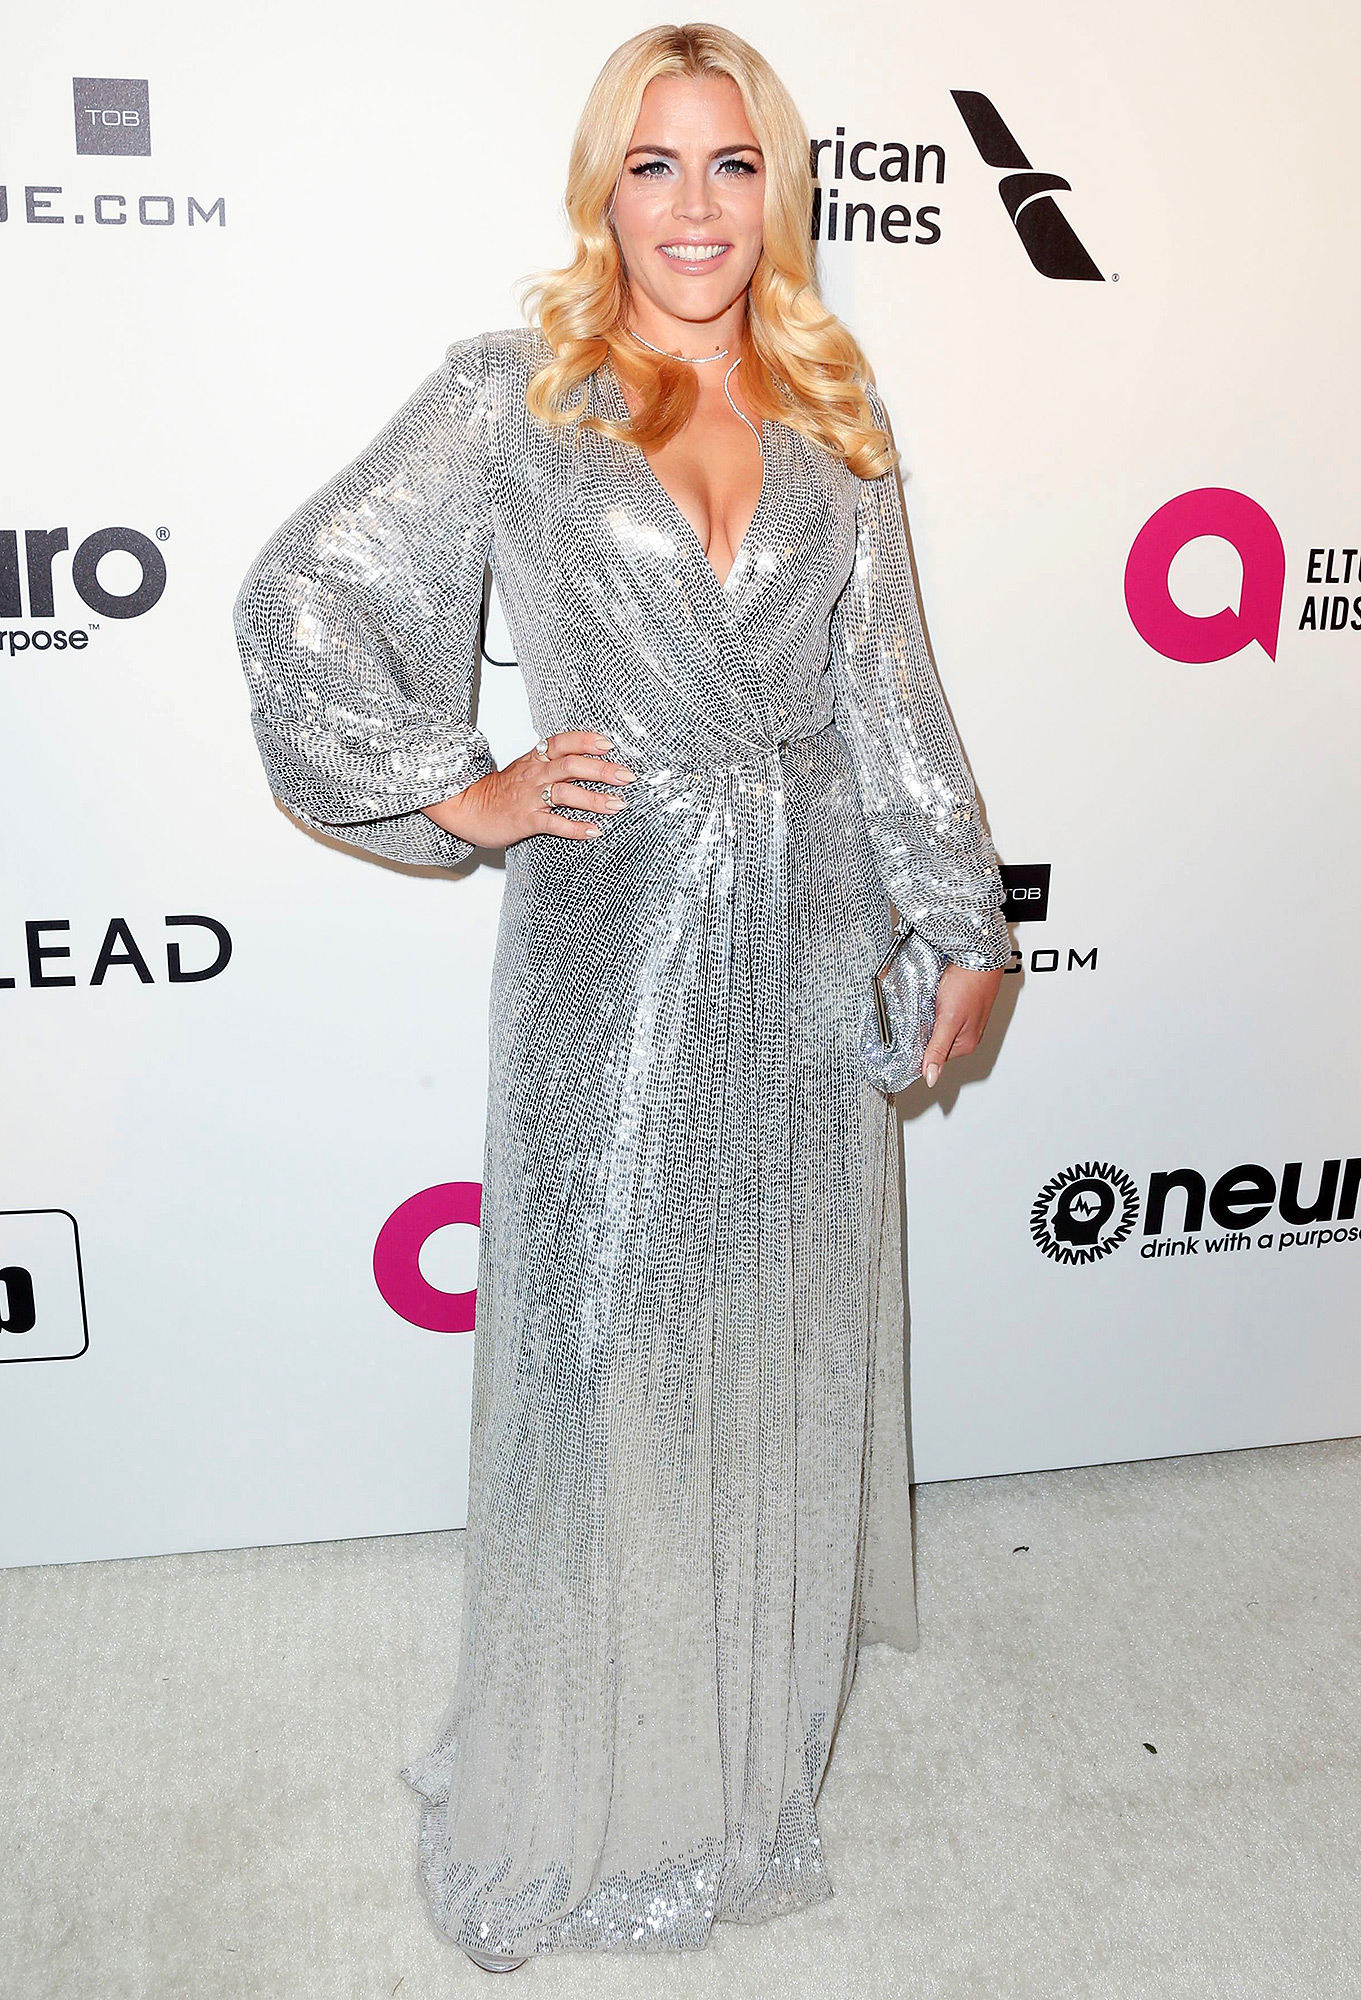 Elton John AIDS Foundation Academy Awards Viewing Party, Los Angeles, USA - 24 Feb 2019